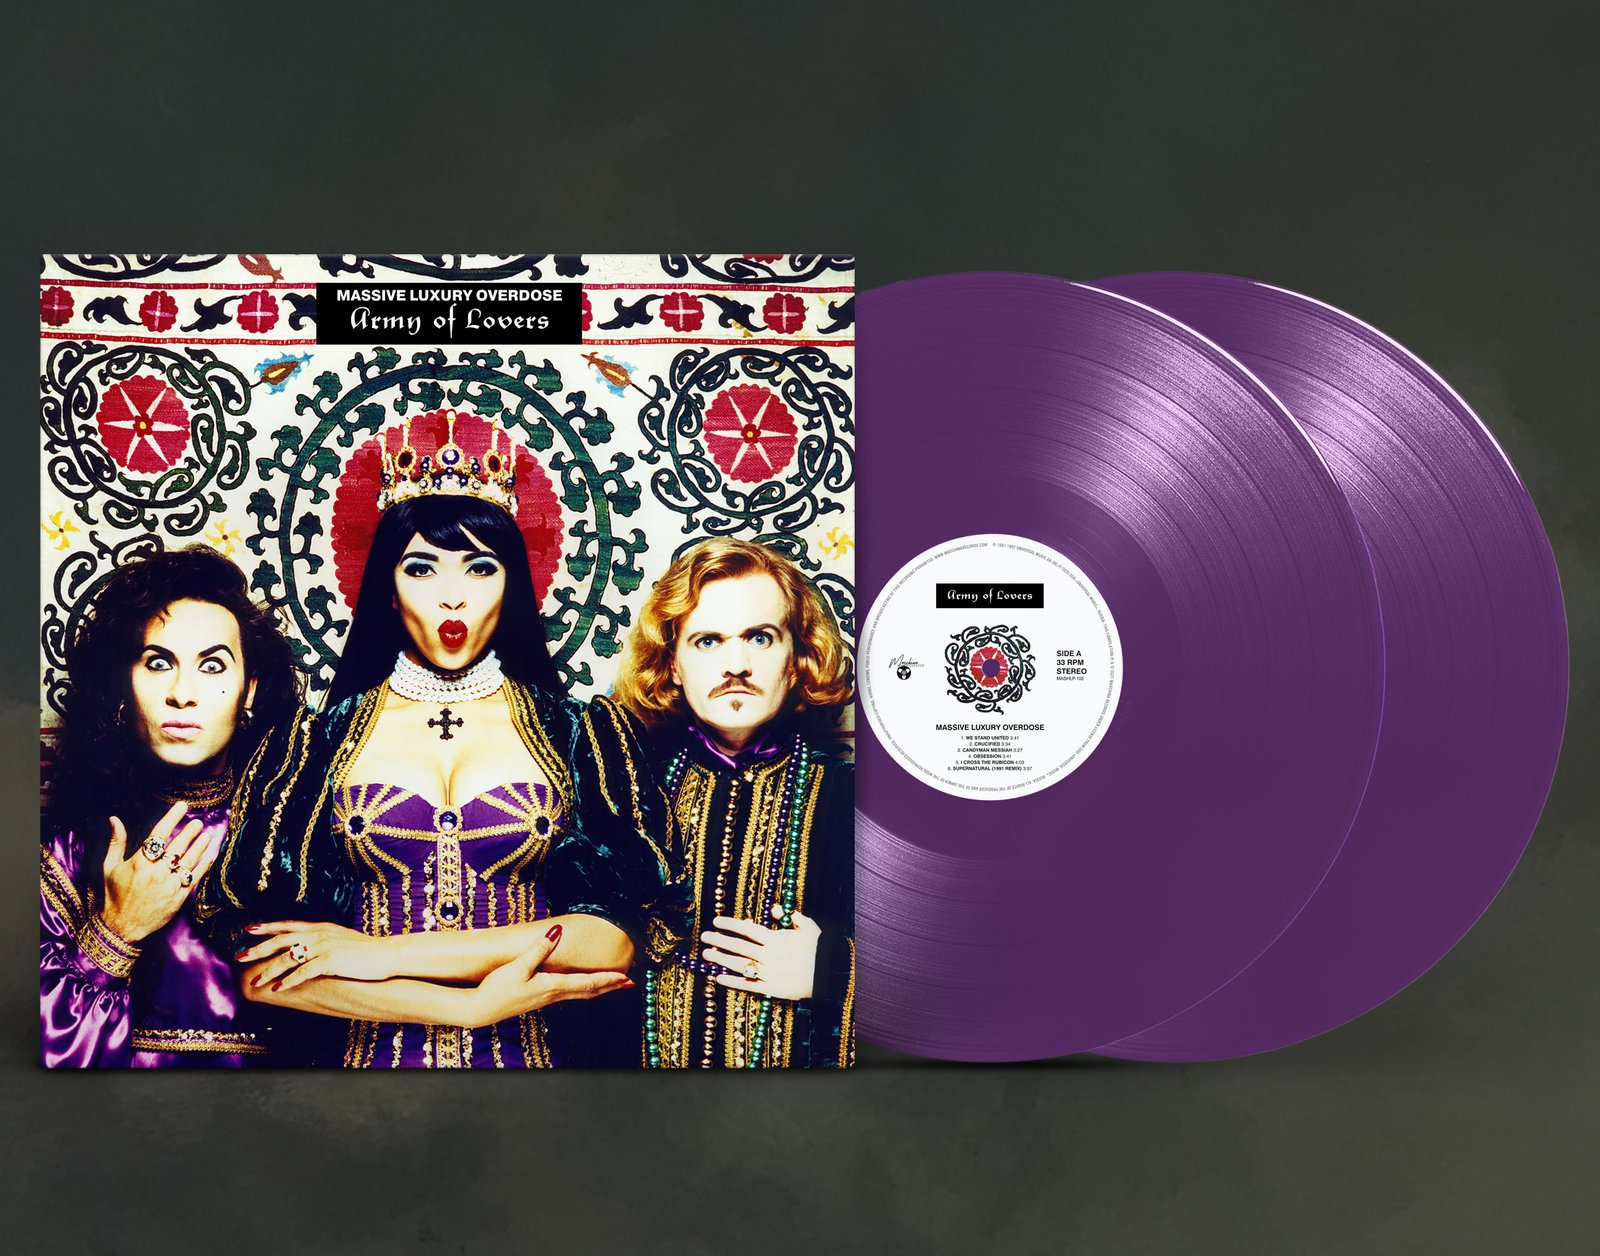 Army of Lovers Massive Luxury Overdose